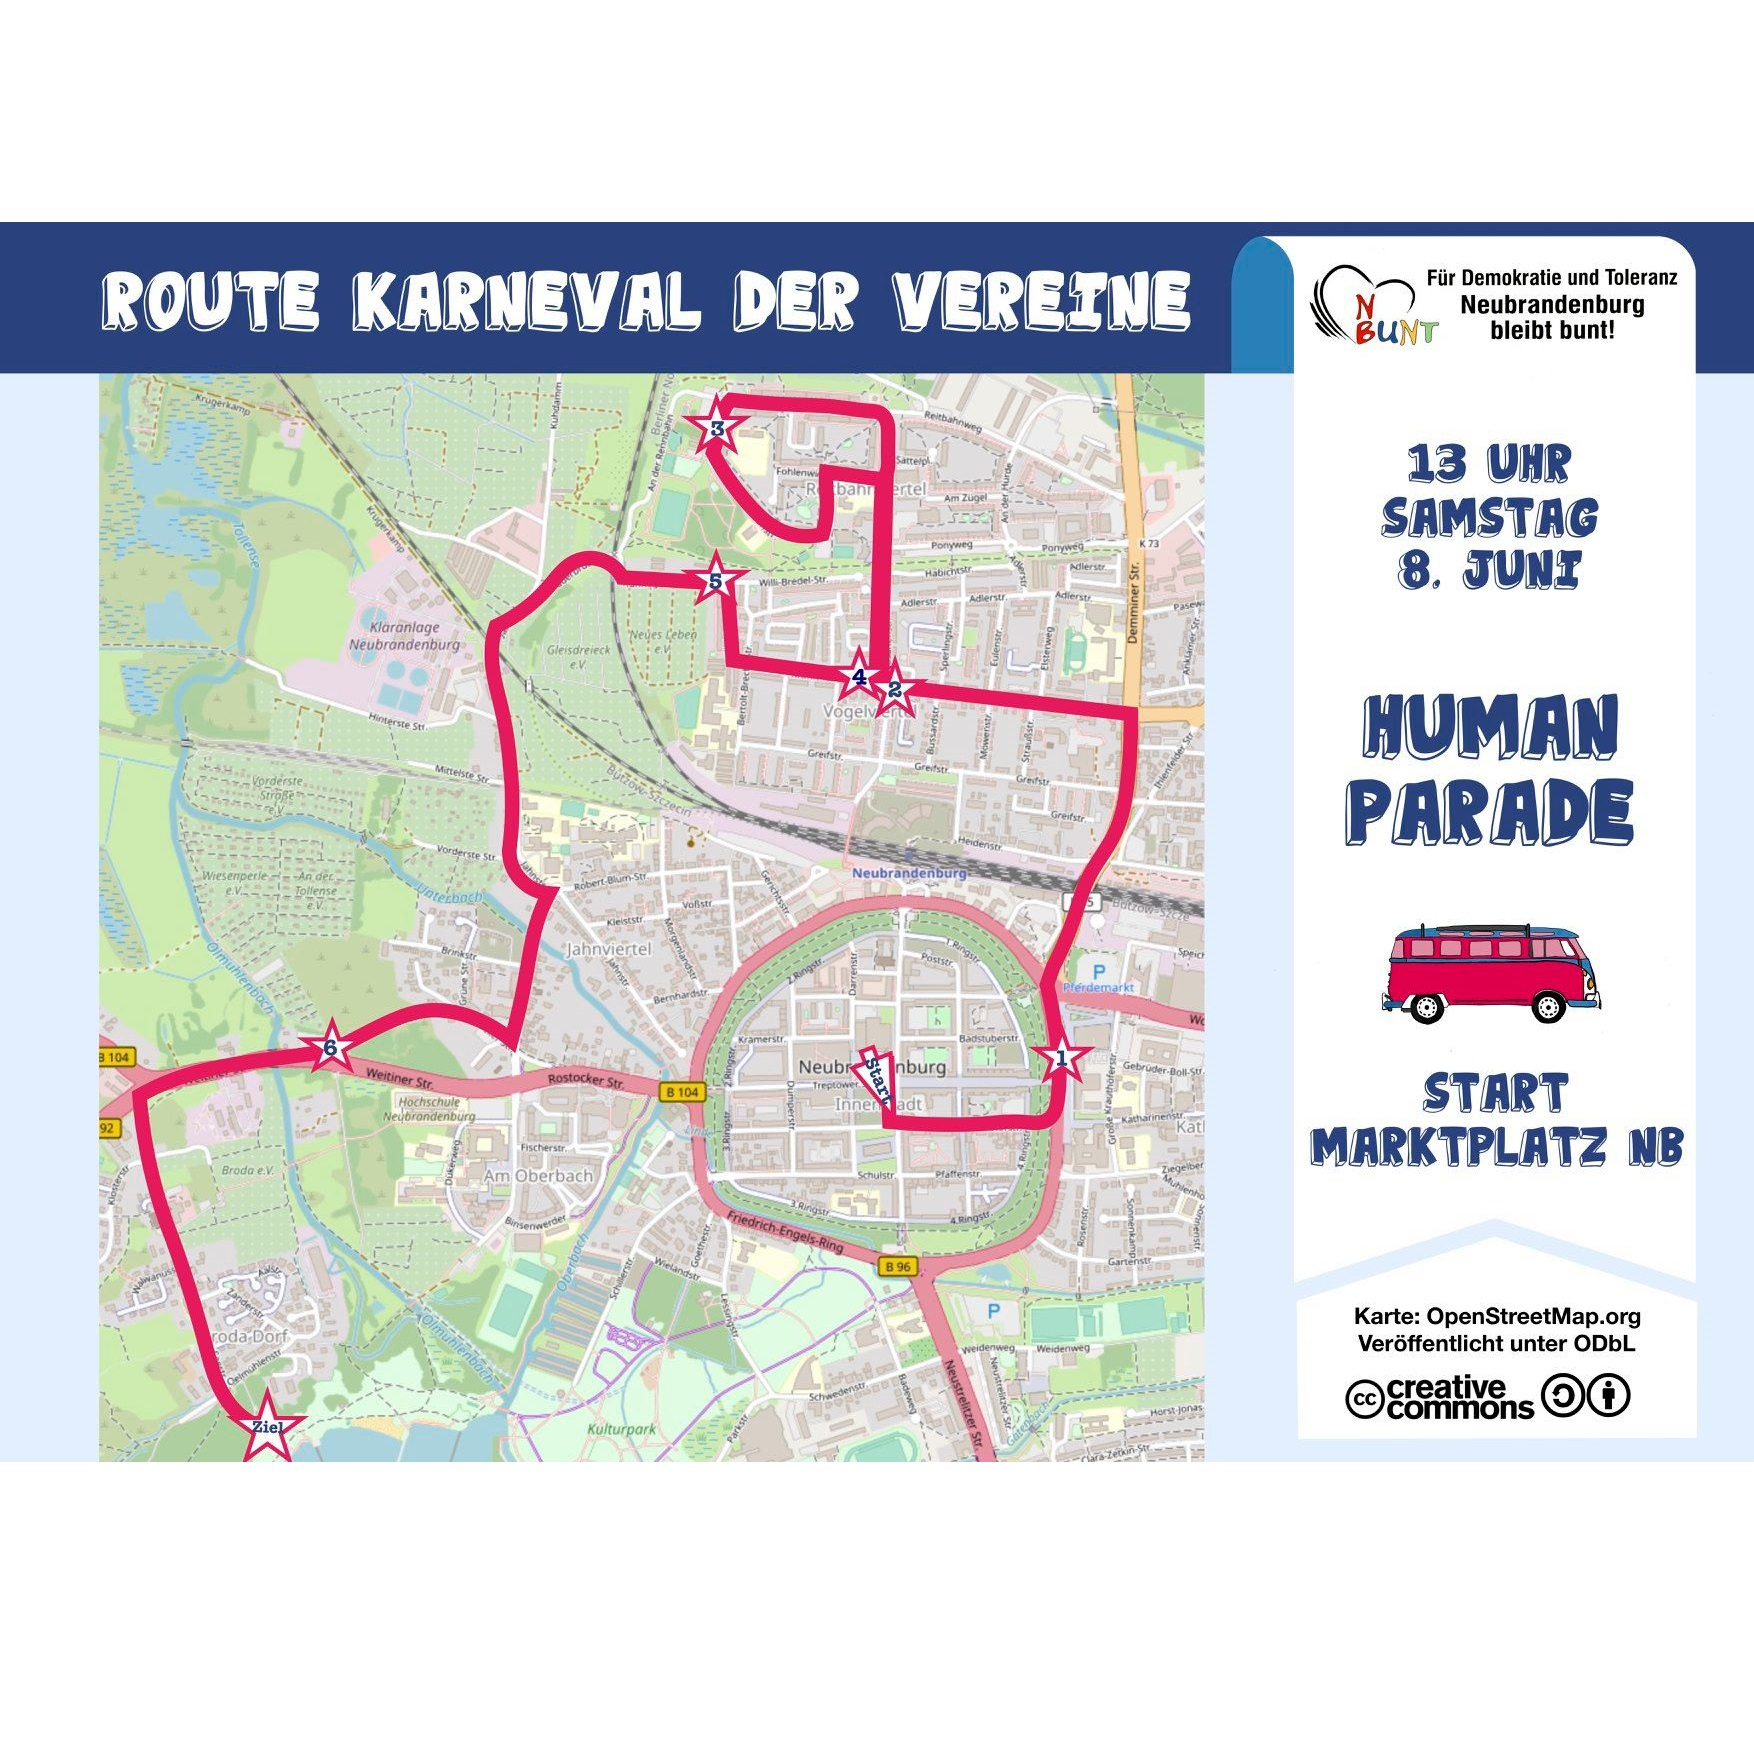 Human Parade - Route